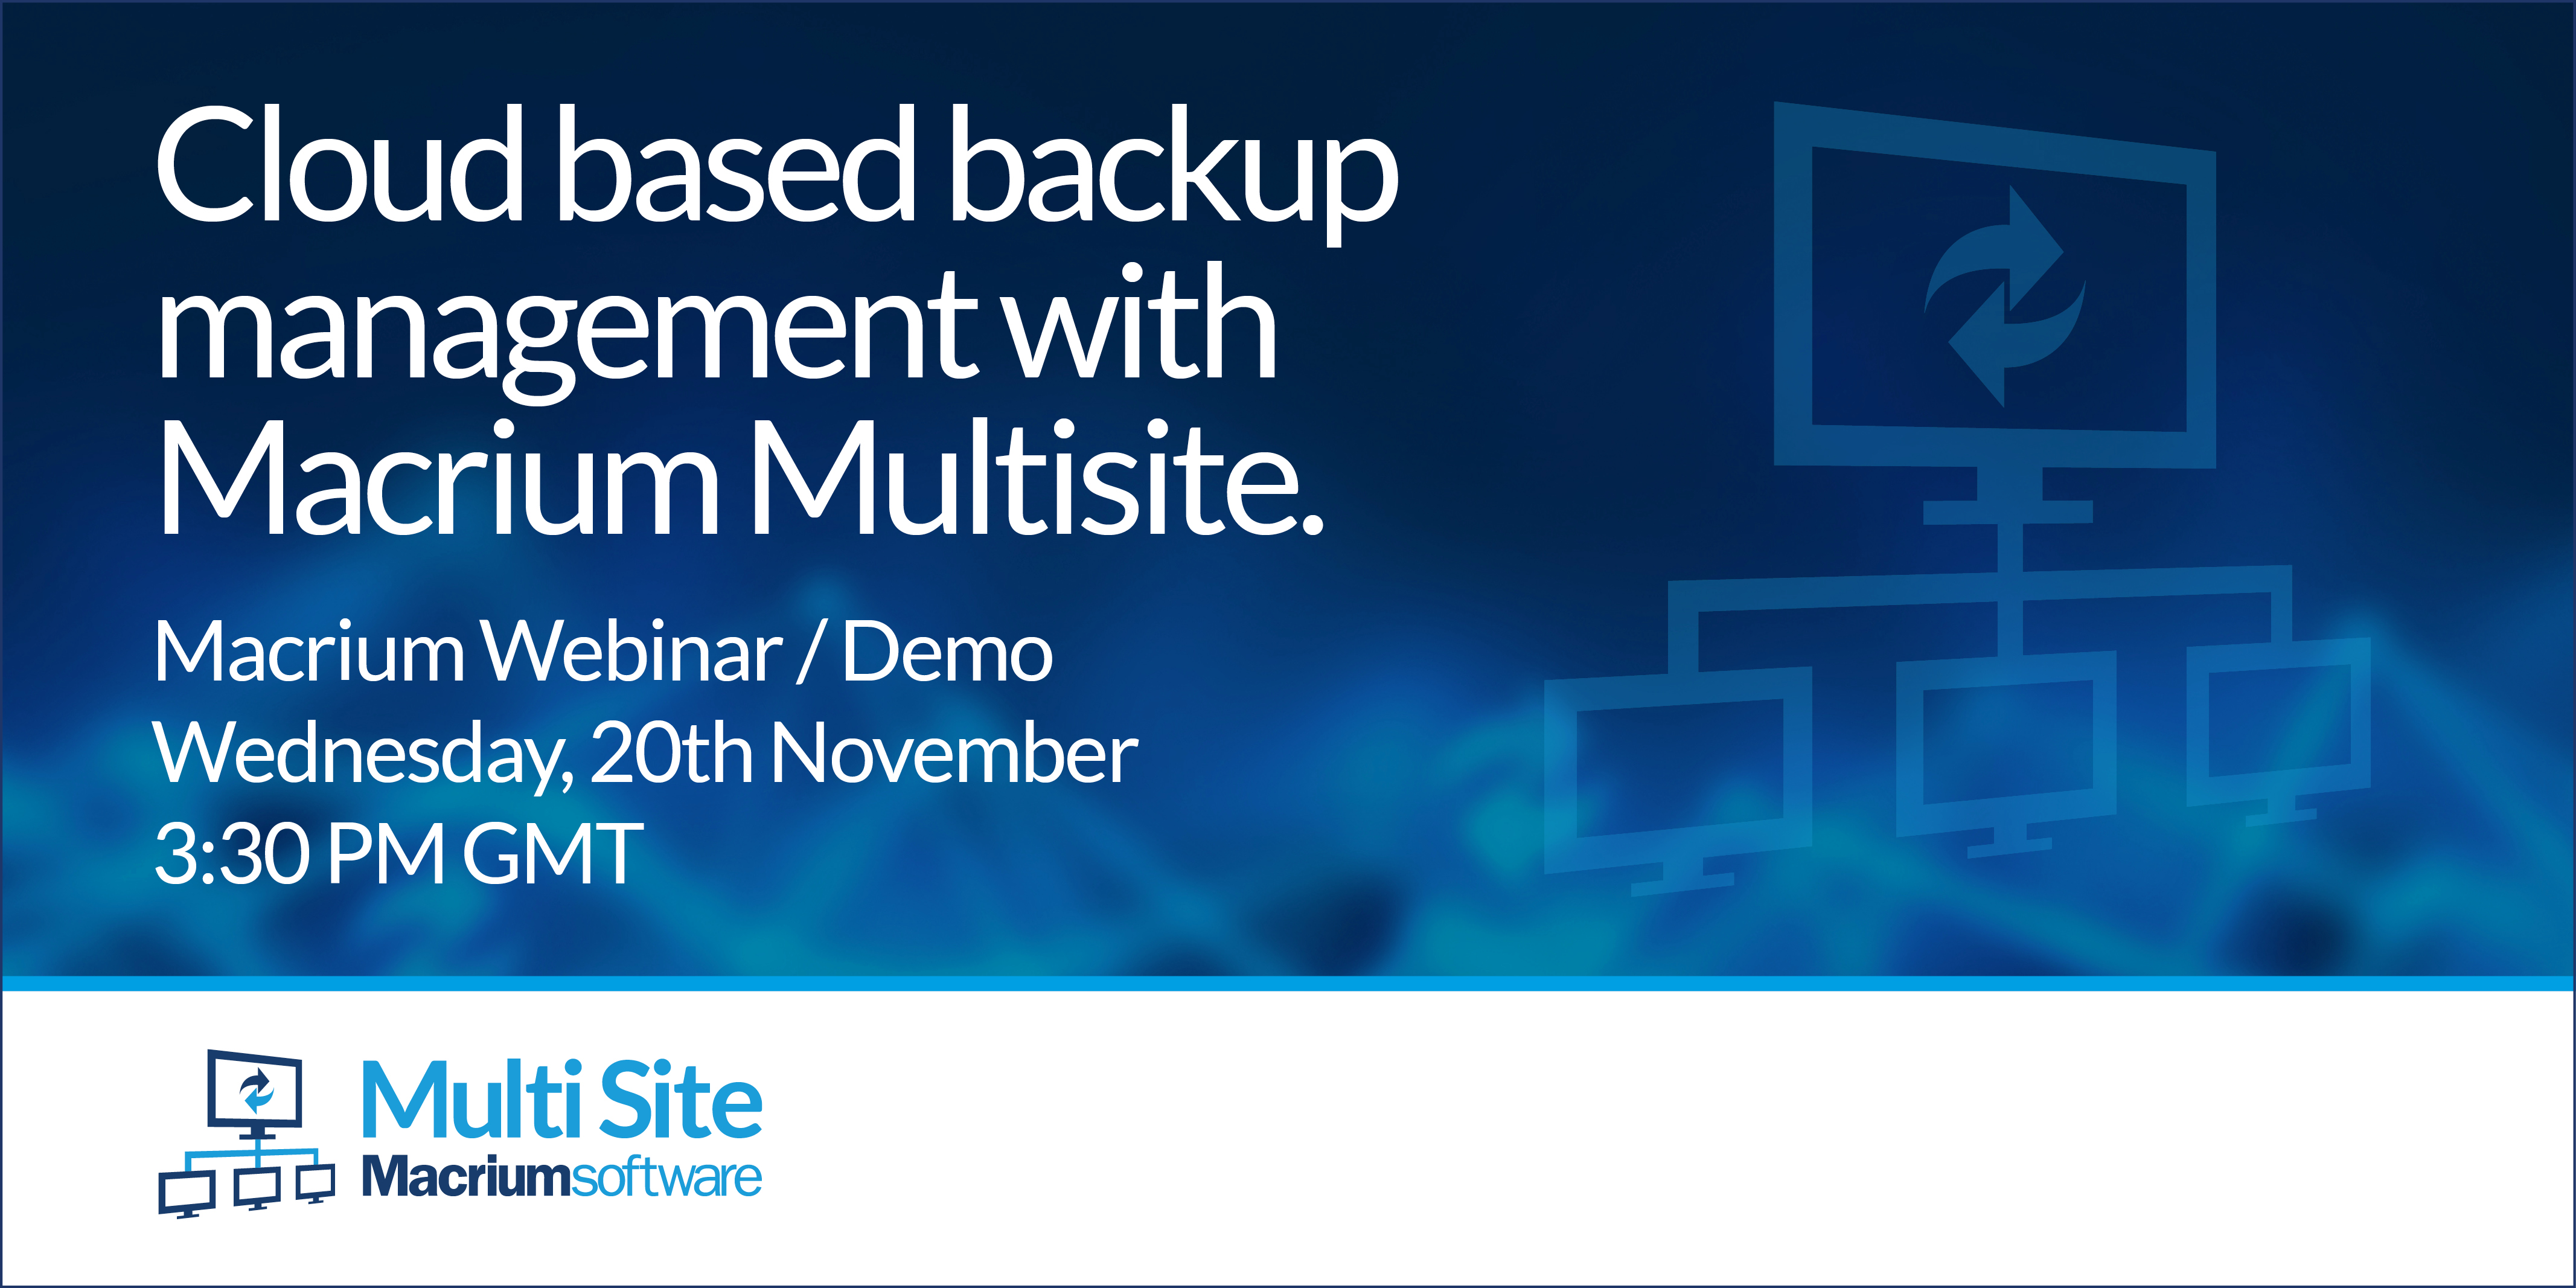 Webinar - Cloud based backup management with Macrium MultiSite